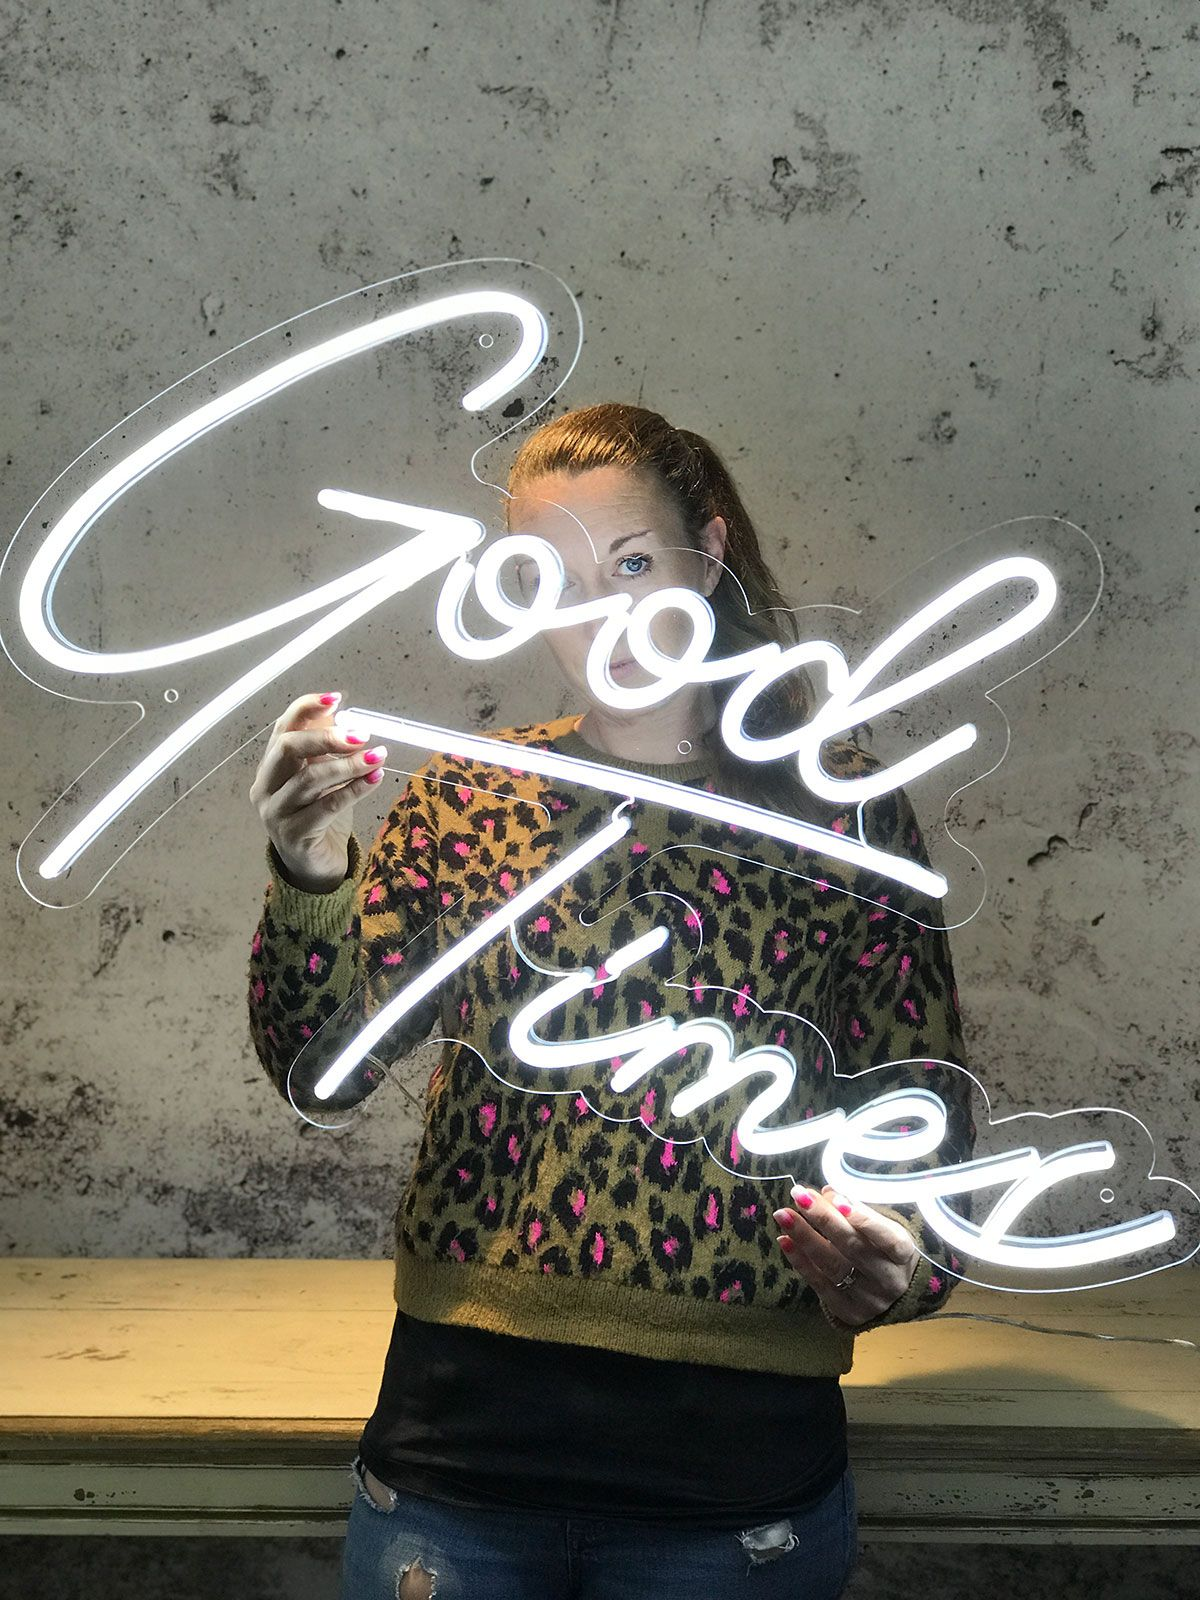 Good Times LED Neon light in 2020 Led neon signs, Neon